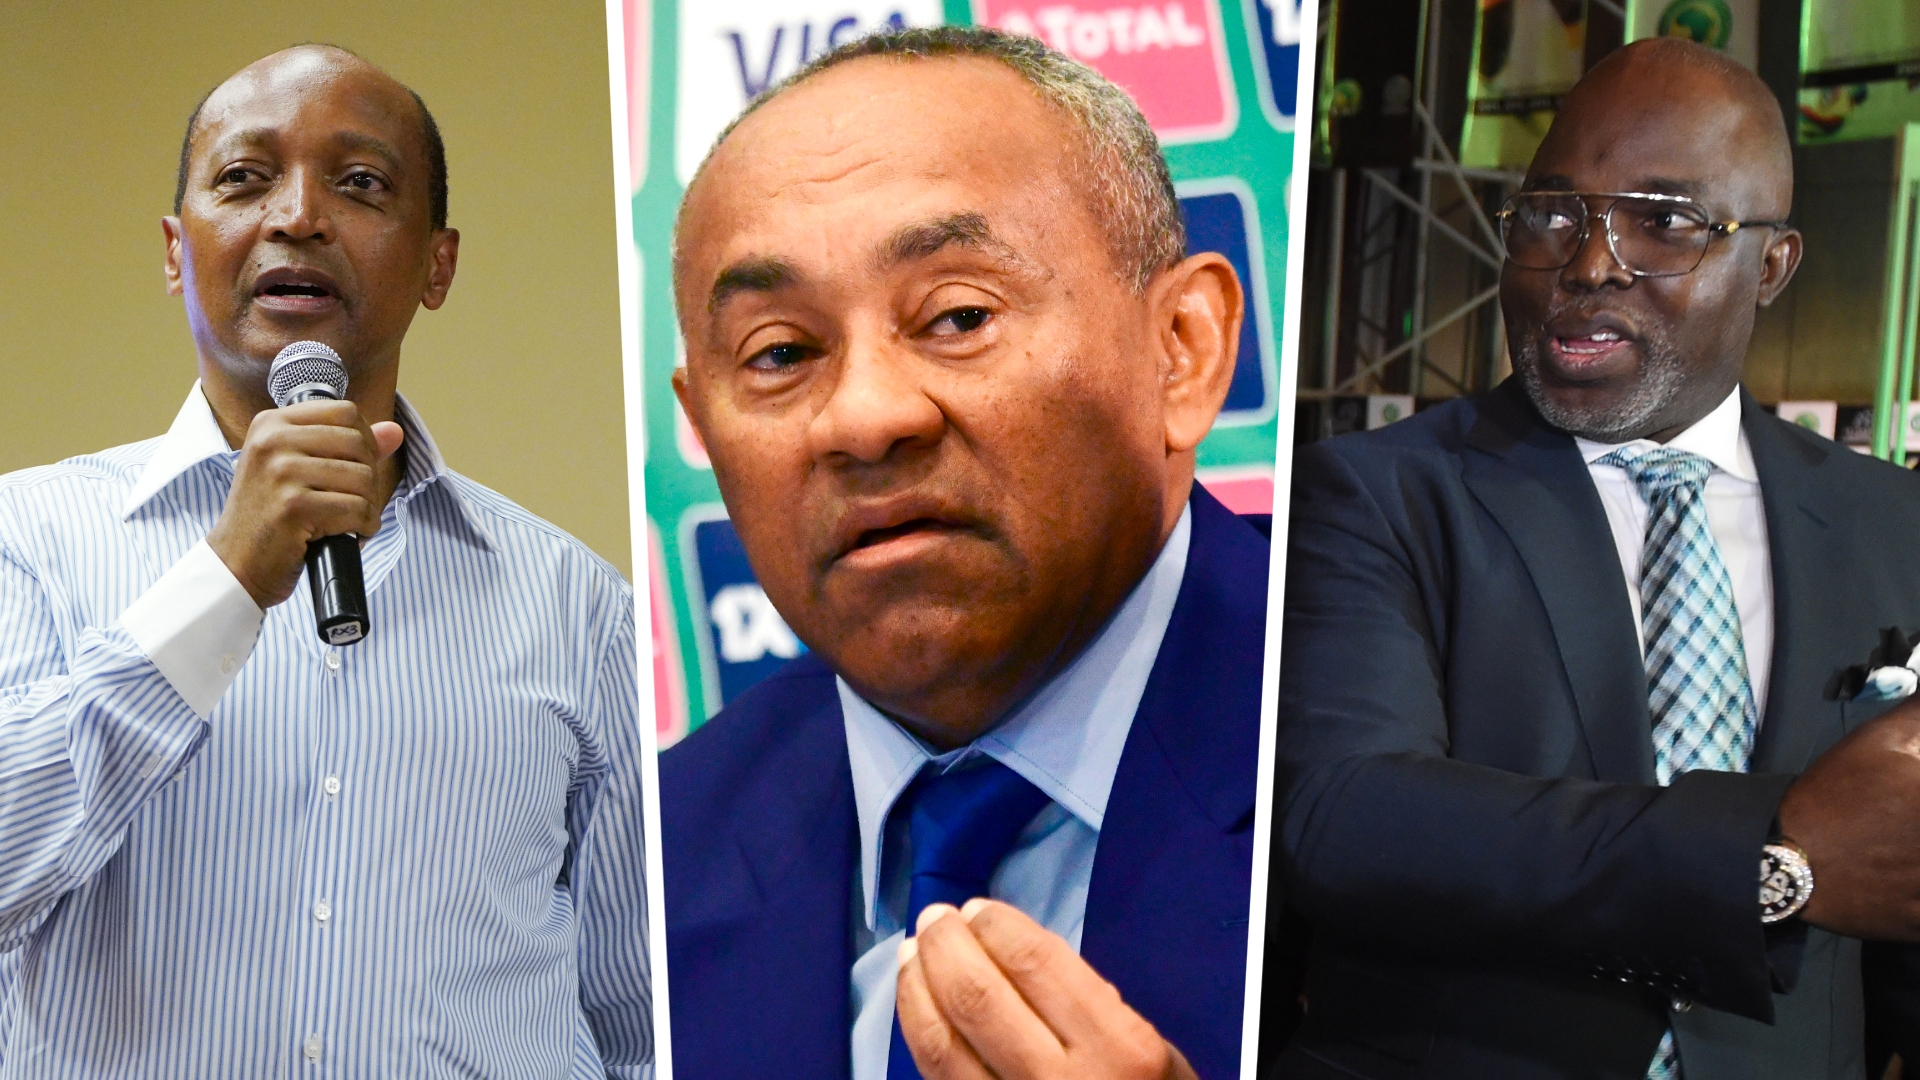 South African billionaire Motsepe cleared for Caf presidency while Nigeria's Pinnick vies for Fifa Council seat